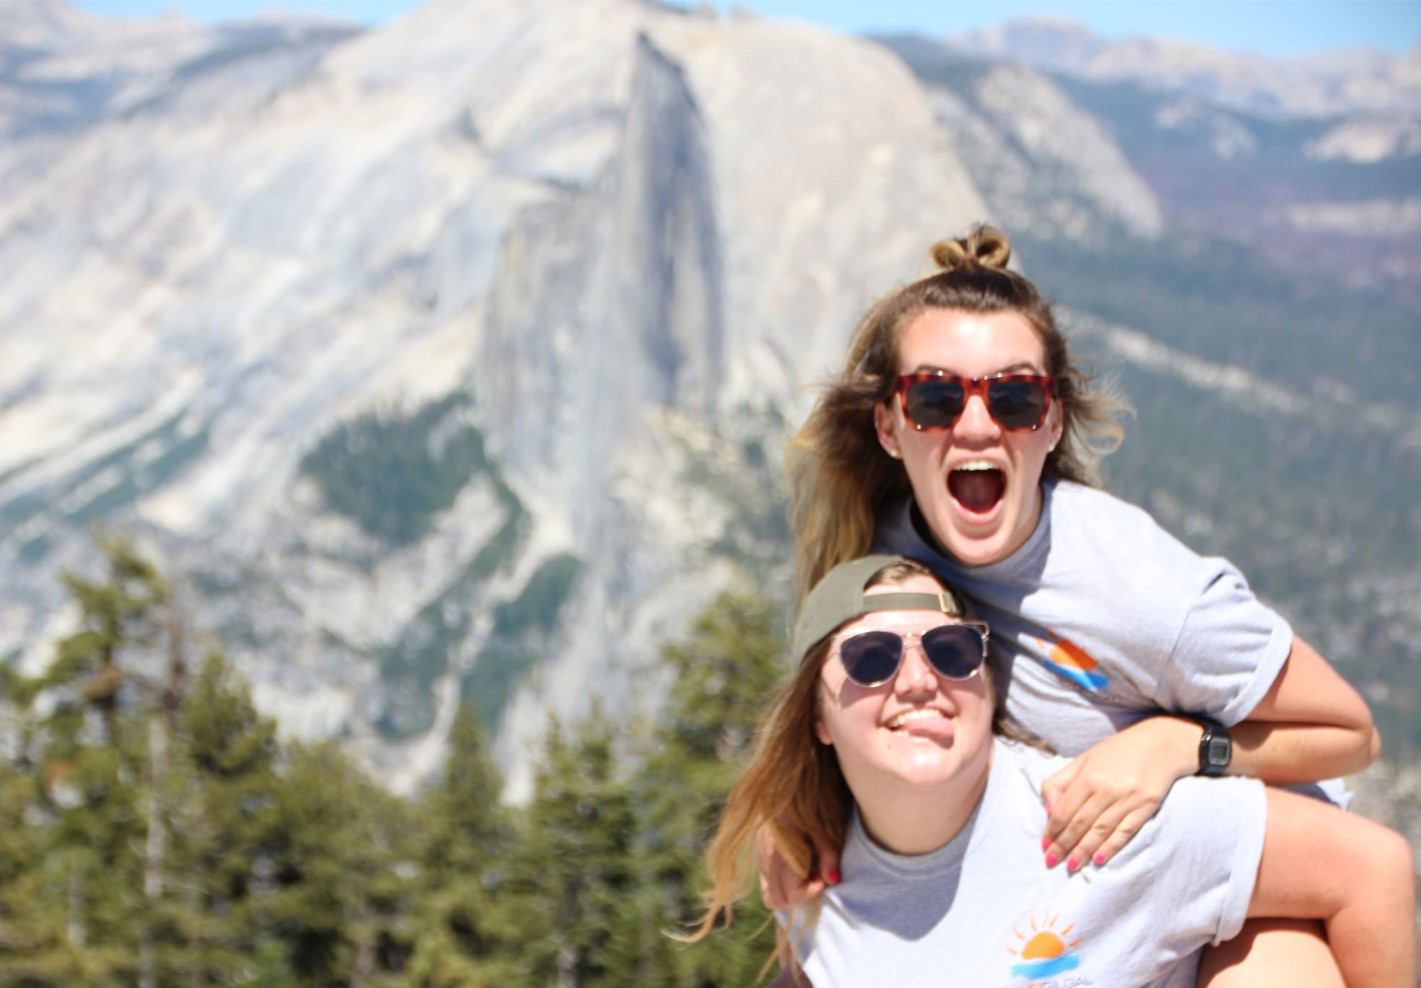 Adventure in Yosemite